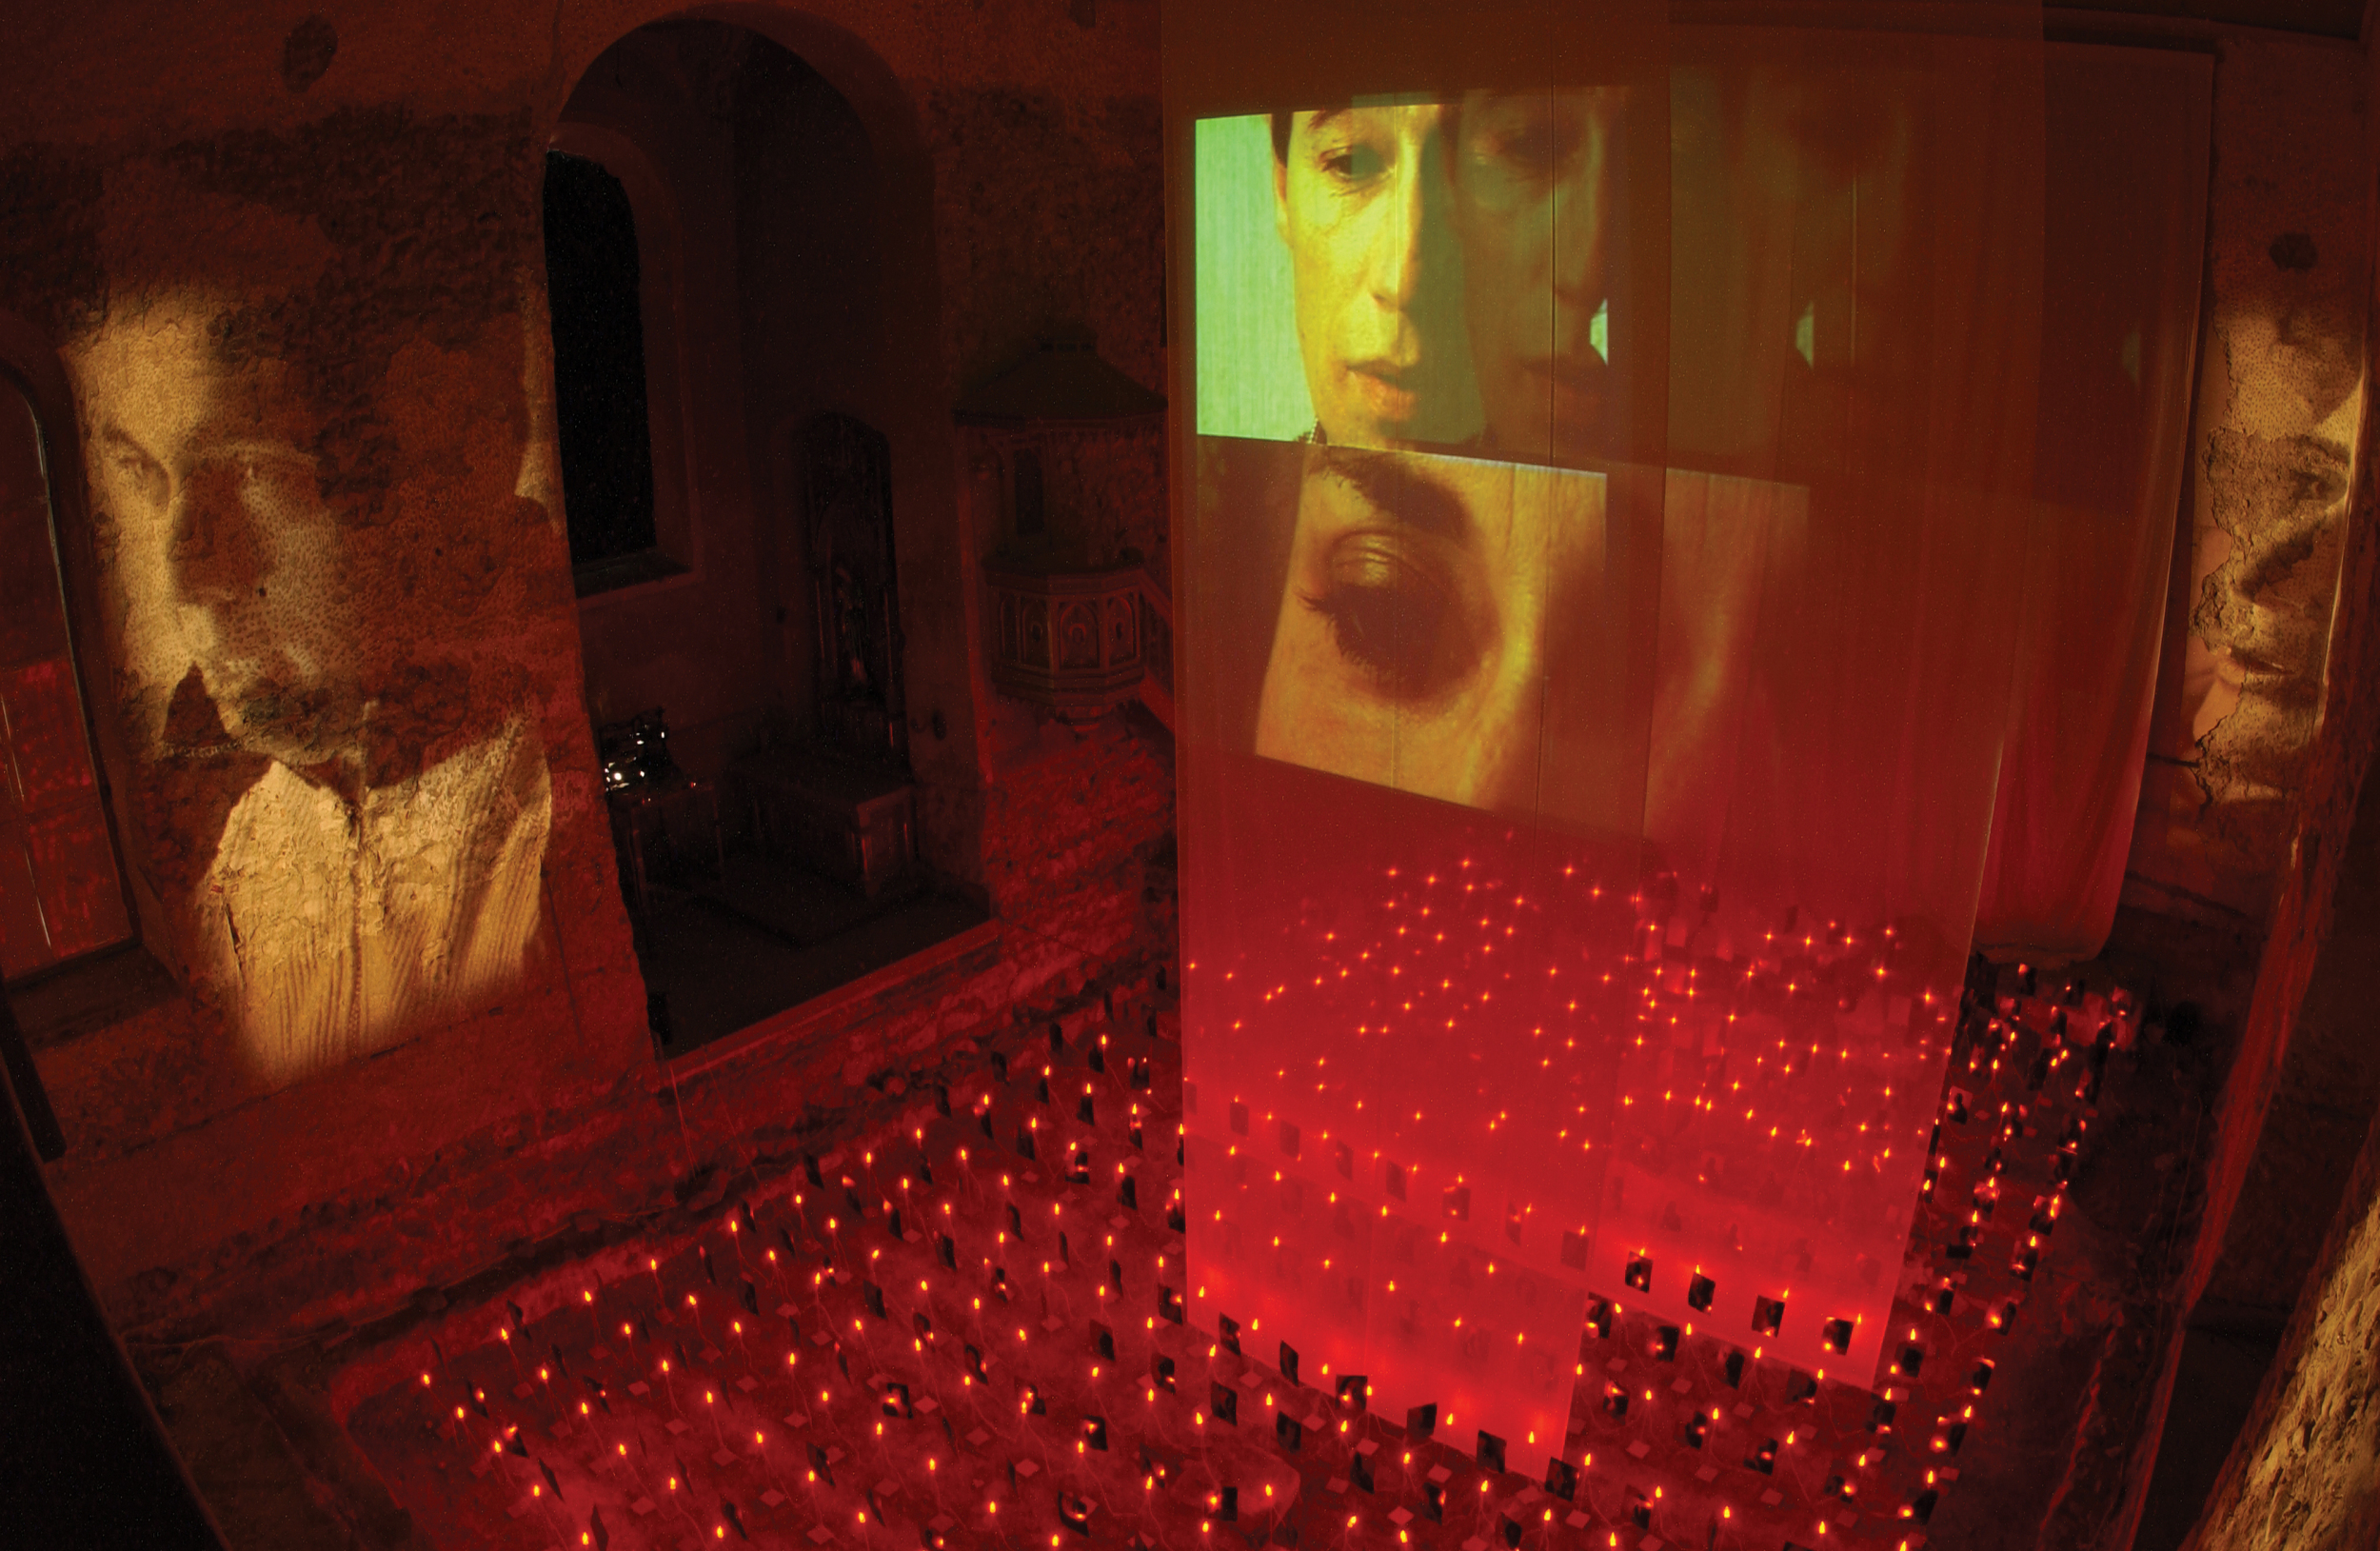 AMEN NEMMEN,   multiple video, audio and slide projection, photography and light  , site specific installation, the Johanniterkirche, Feldkirch, Austria, 2002.   Curator: Eva Jakob